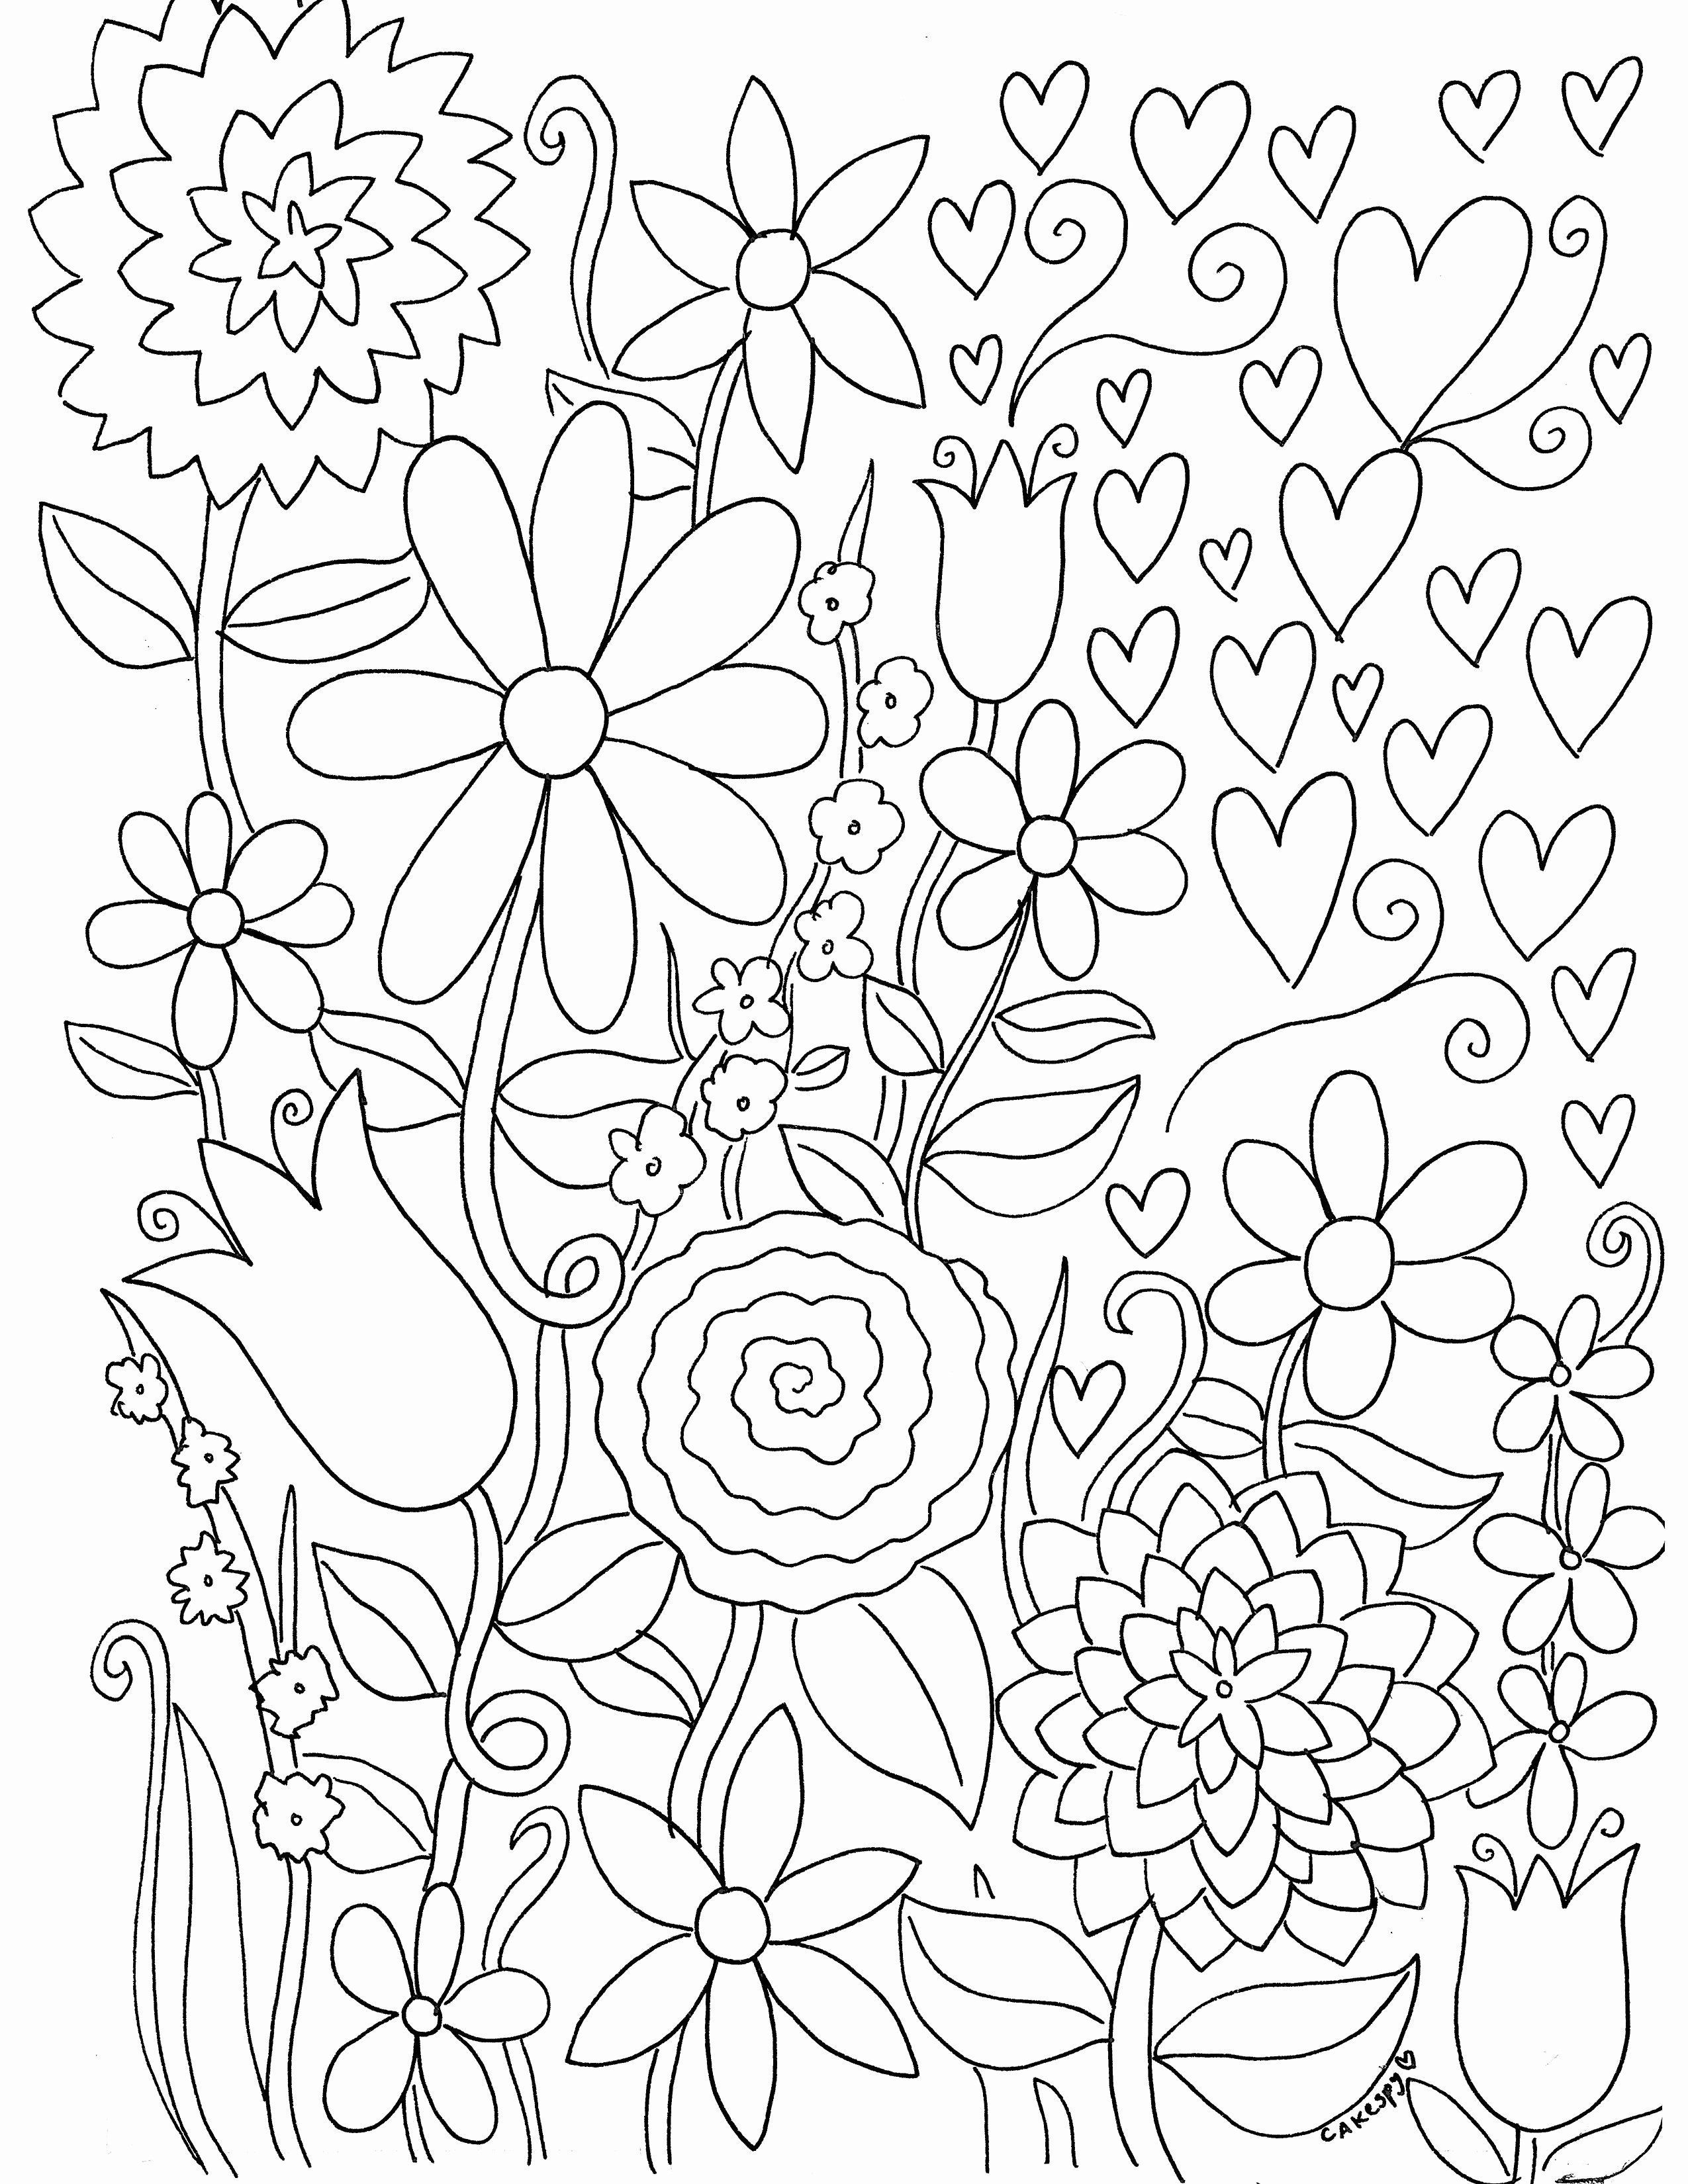 Wonderful Free of Charge Coloring Books flowers Ideas This